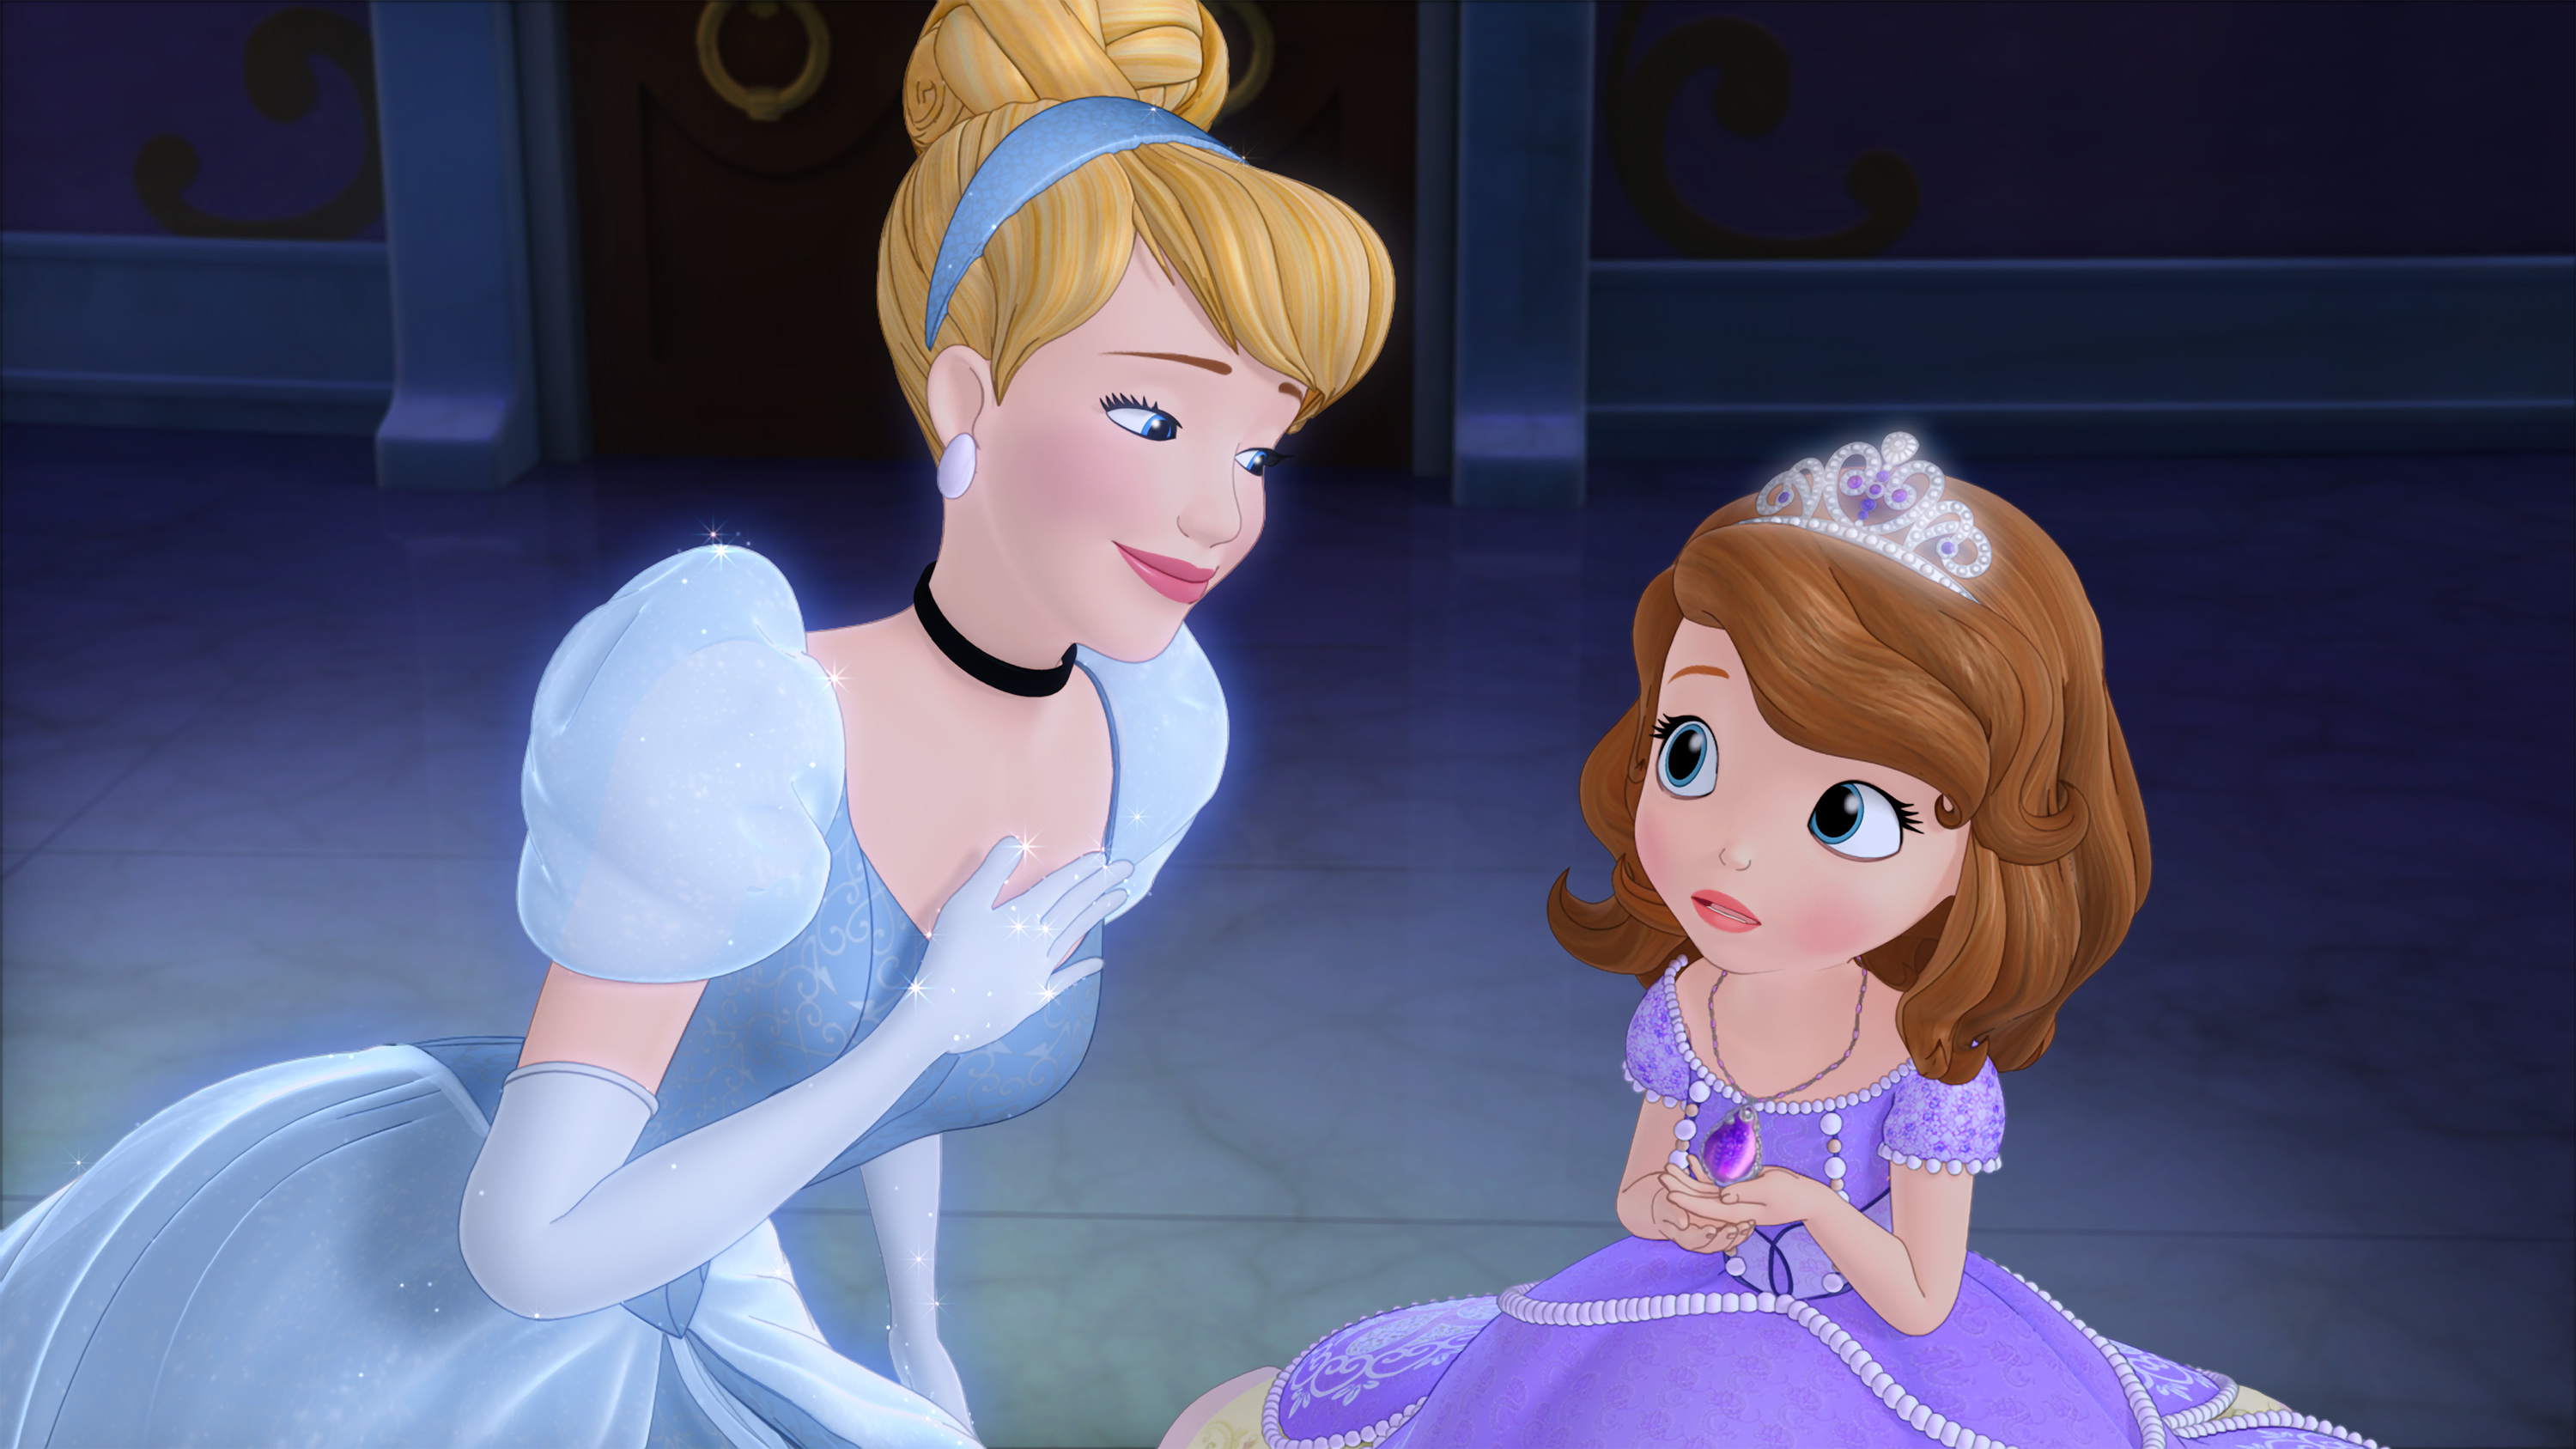 Disney's First Little Girl Princess: Sofia the First has her Royal Arrival November 18, 2012